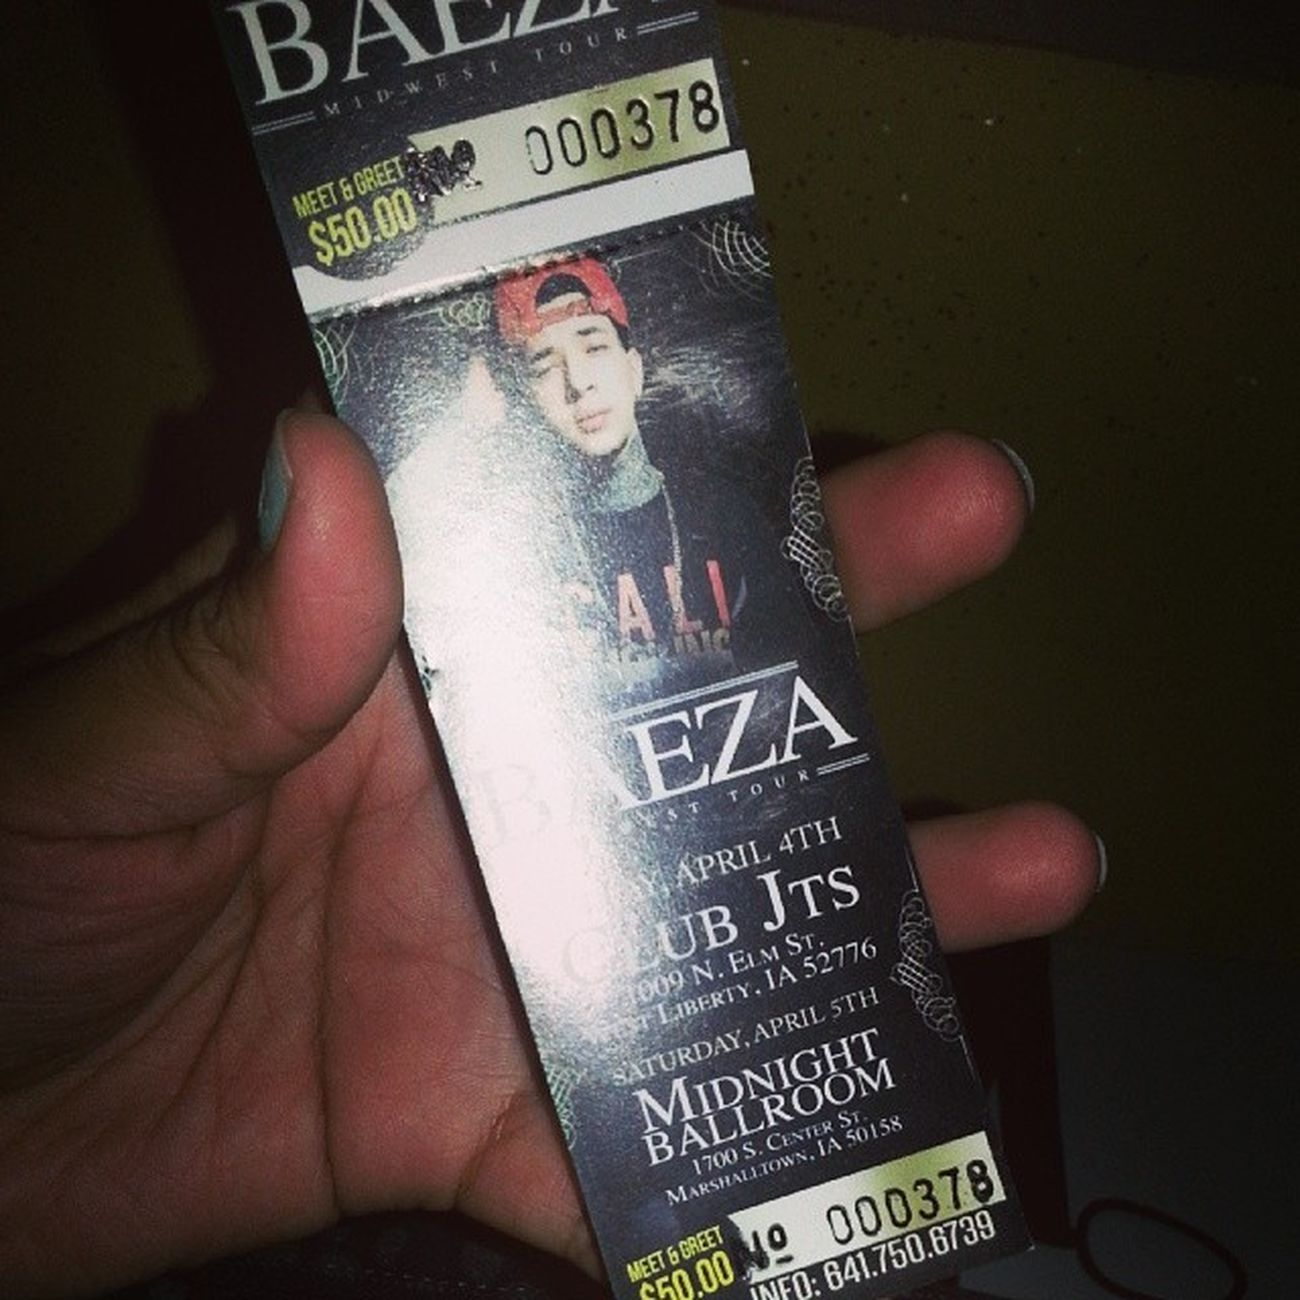 Pretty bomed to go!!! Excited Baeza Ticket April 5